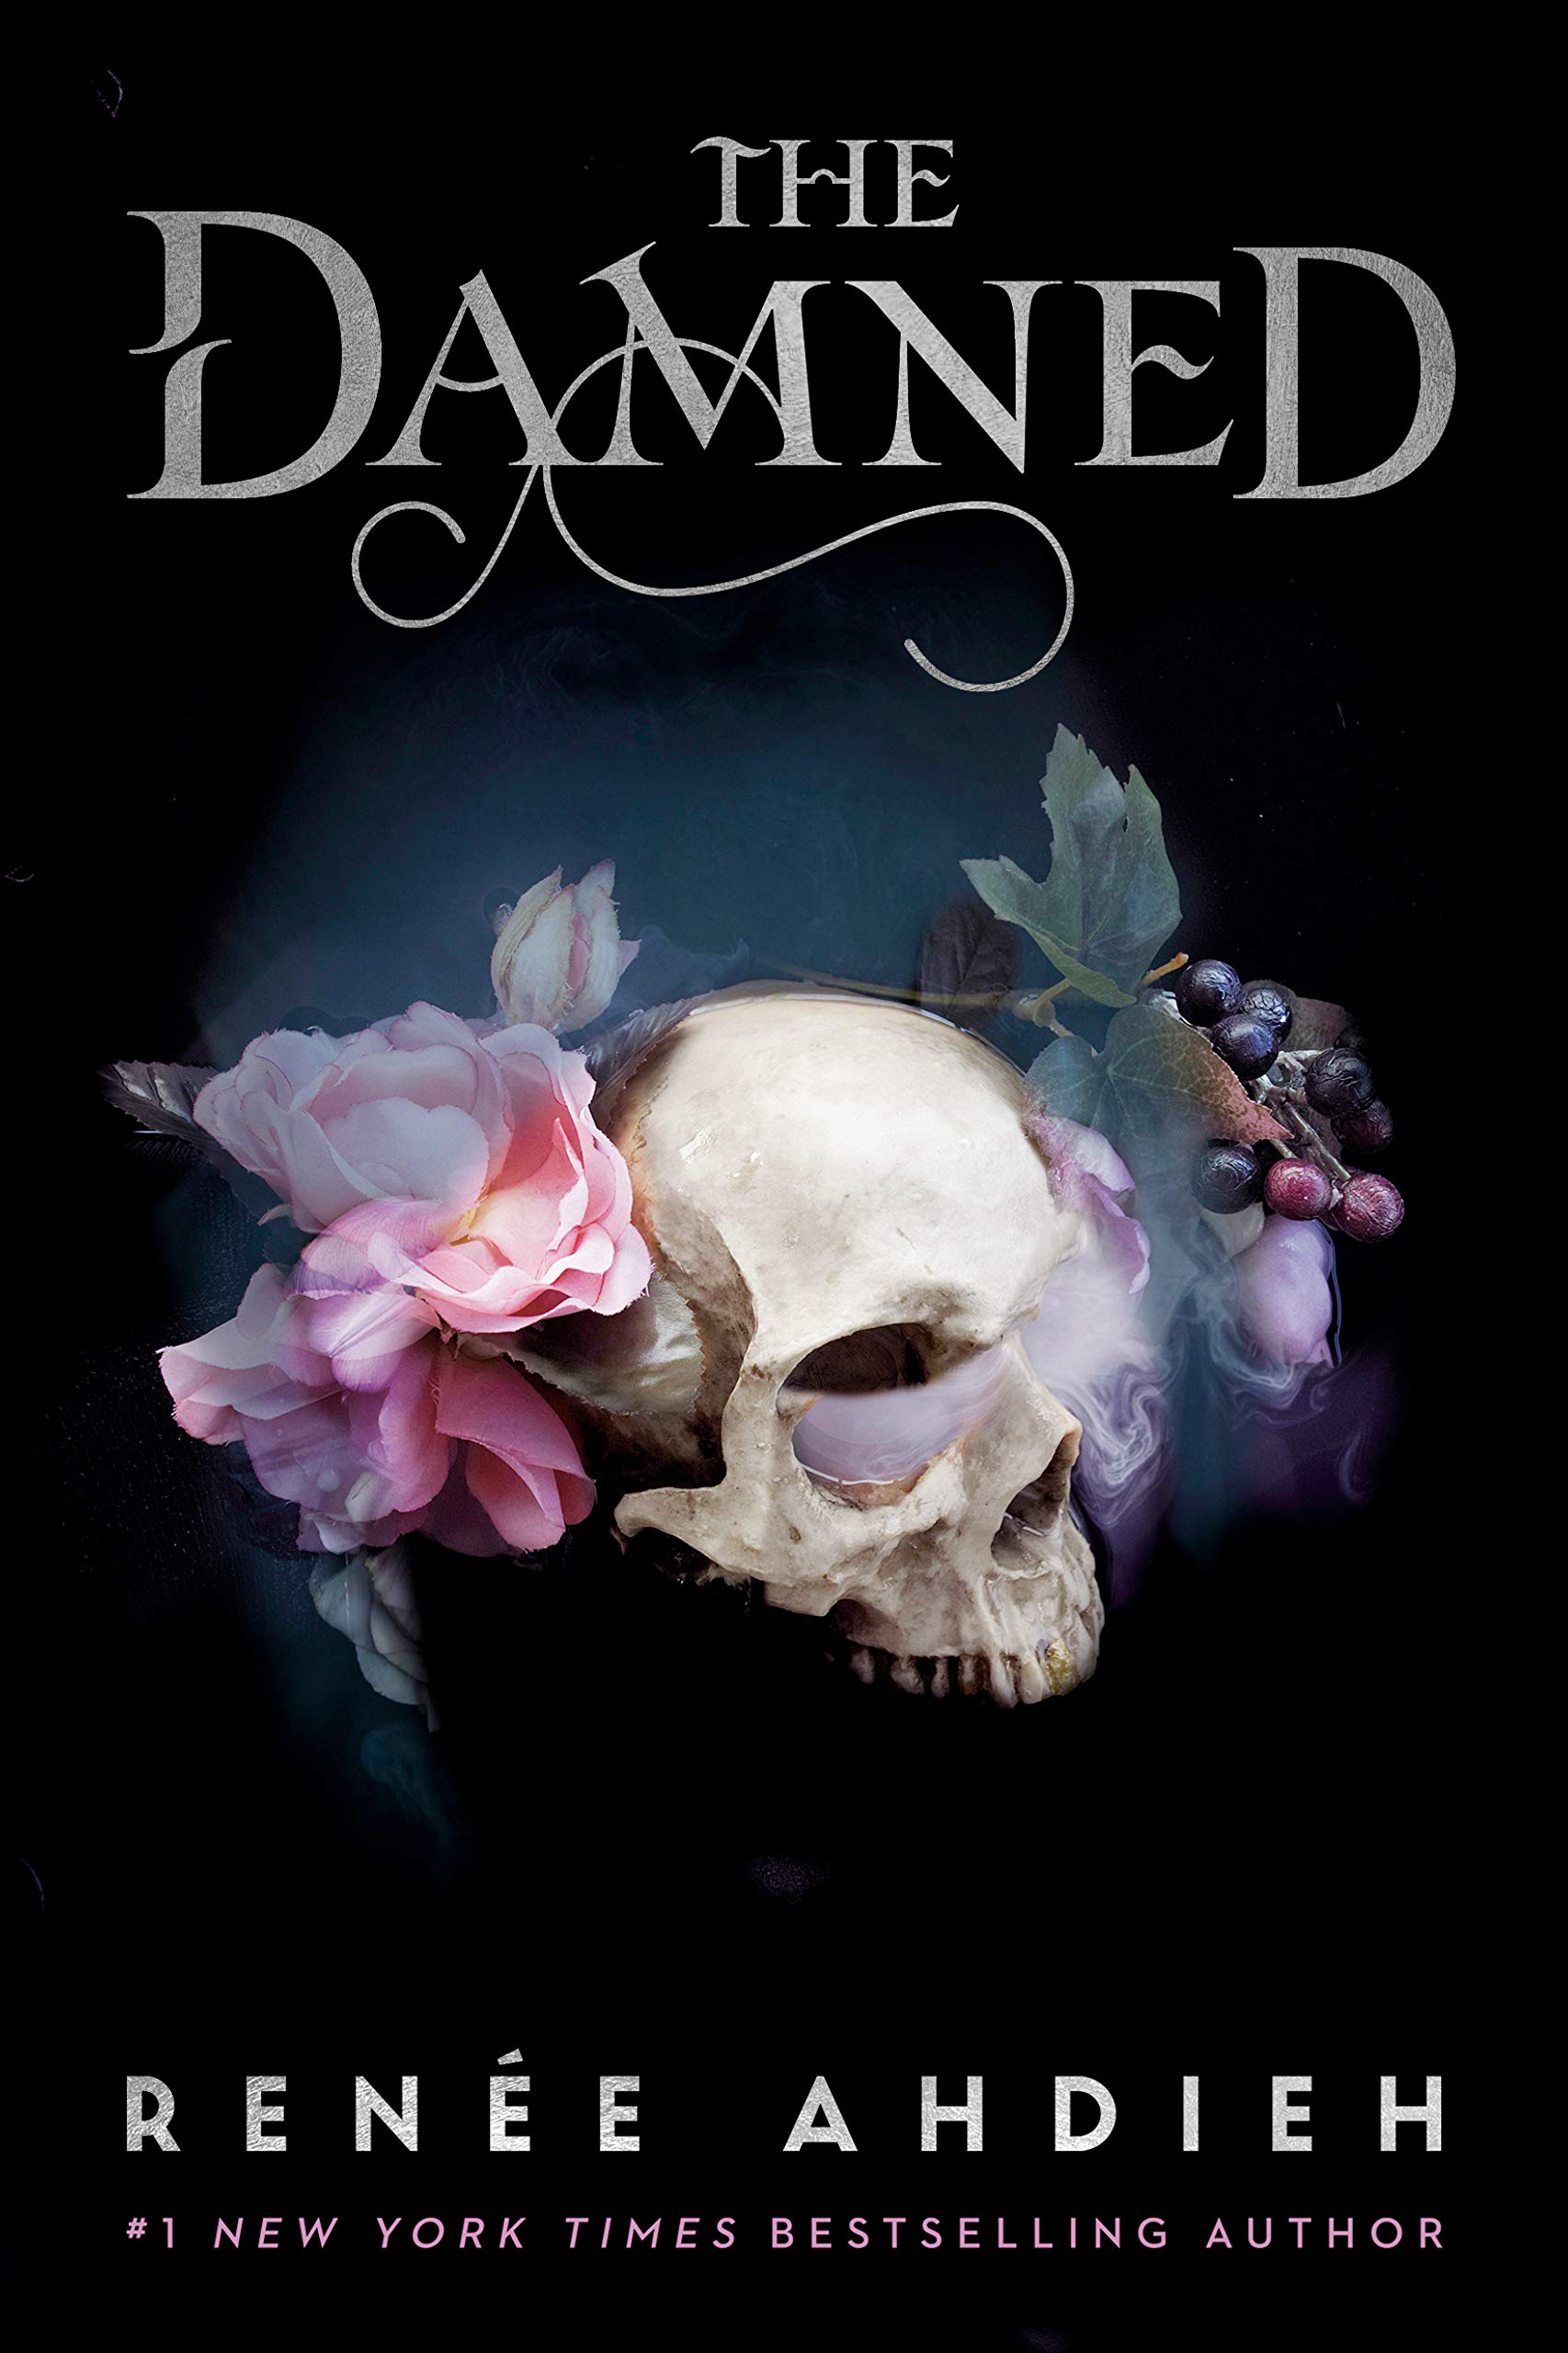 Amazon.com: The Damned (Beautiful) (9781984812582): Ahdieh, Renée ...